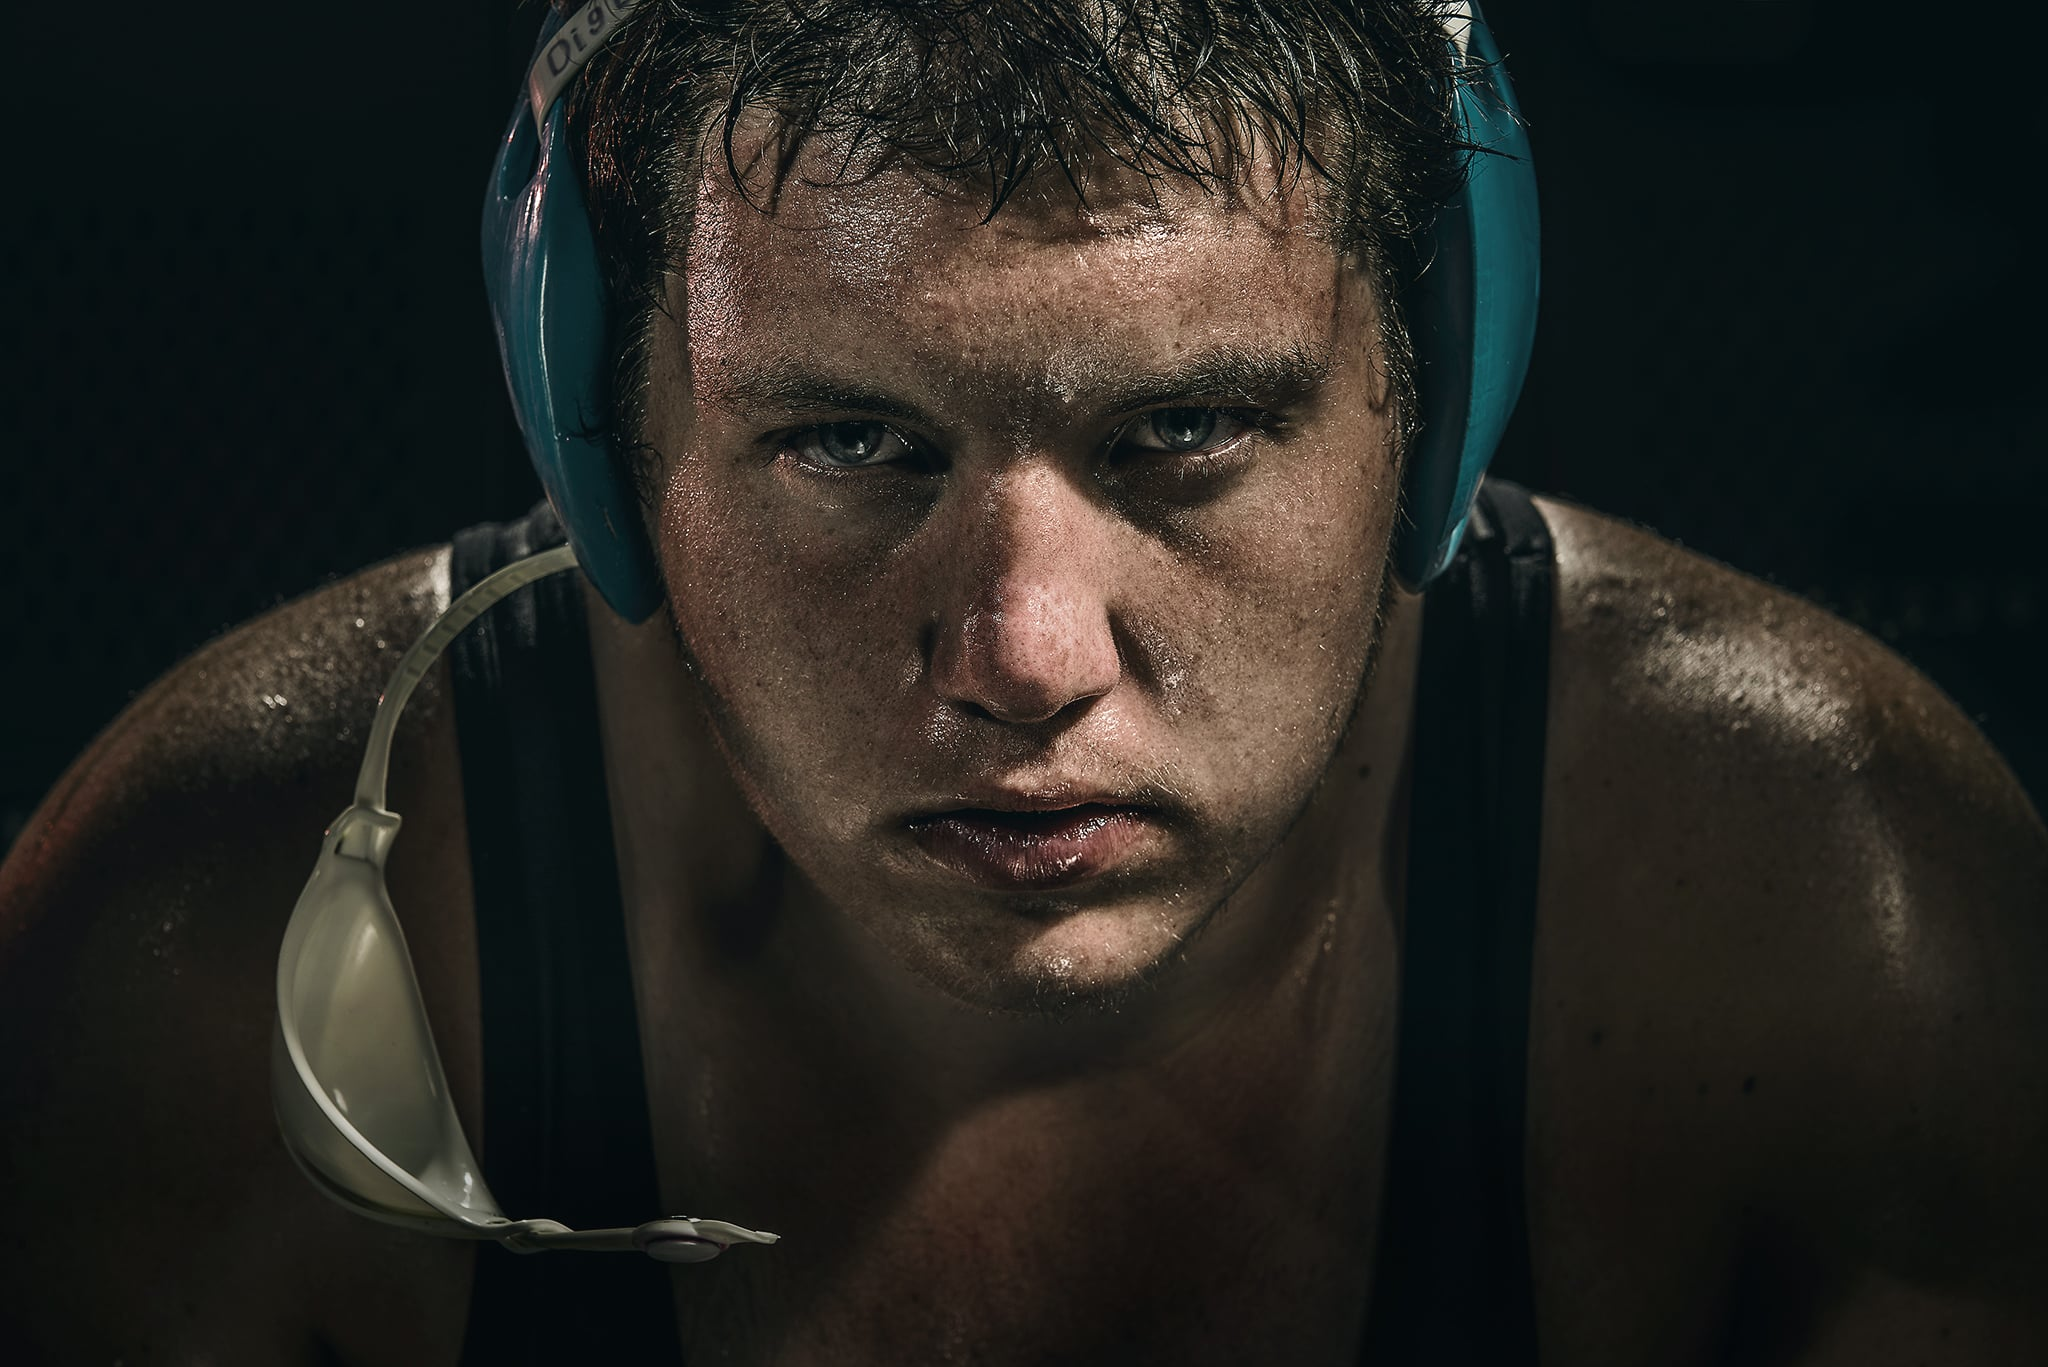 Creative lighting portrait of Colorado State Champion Wrestler